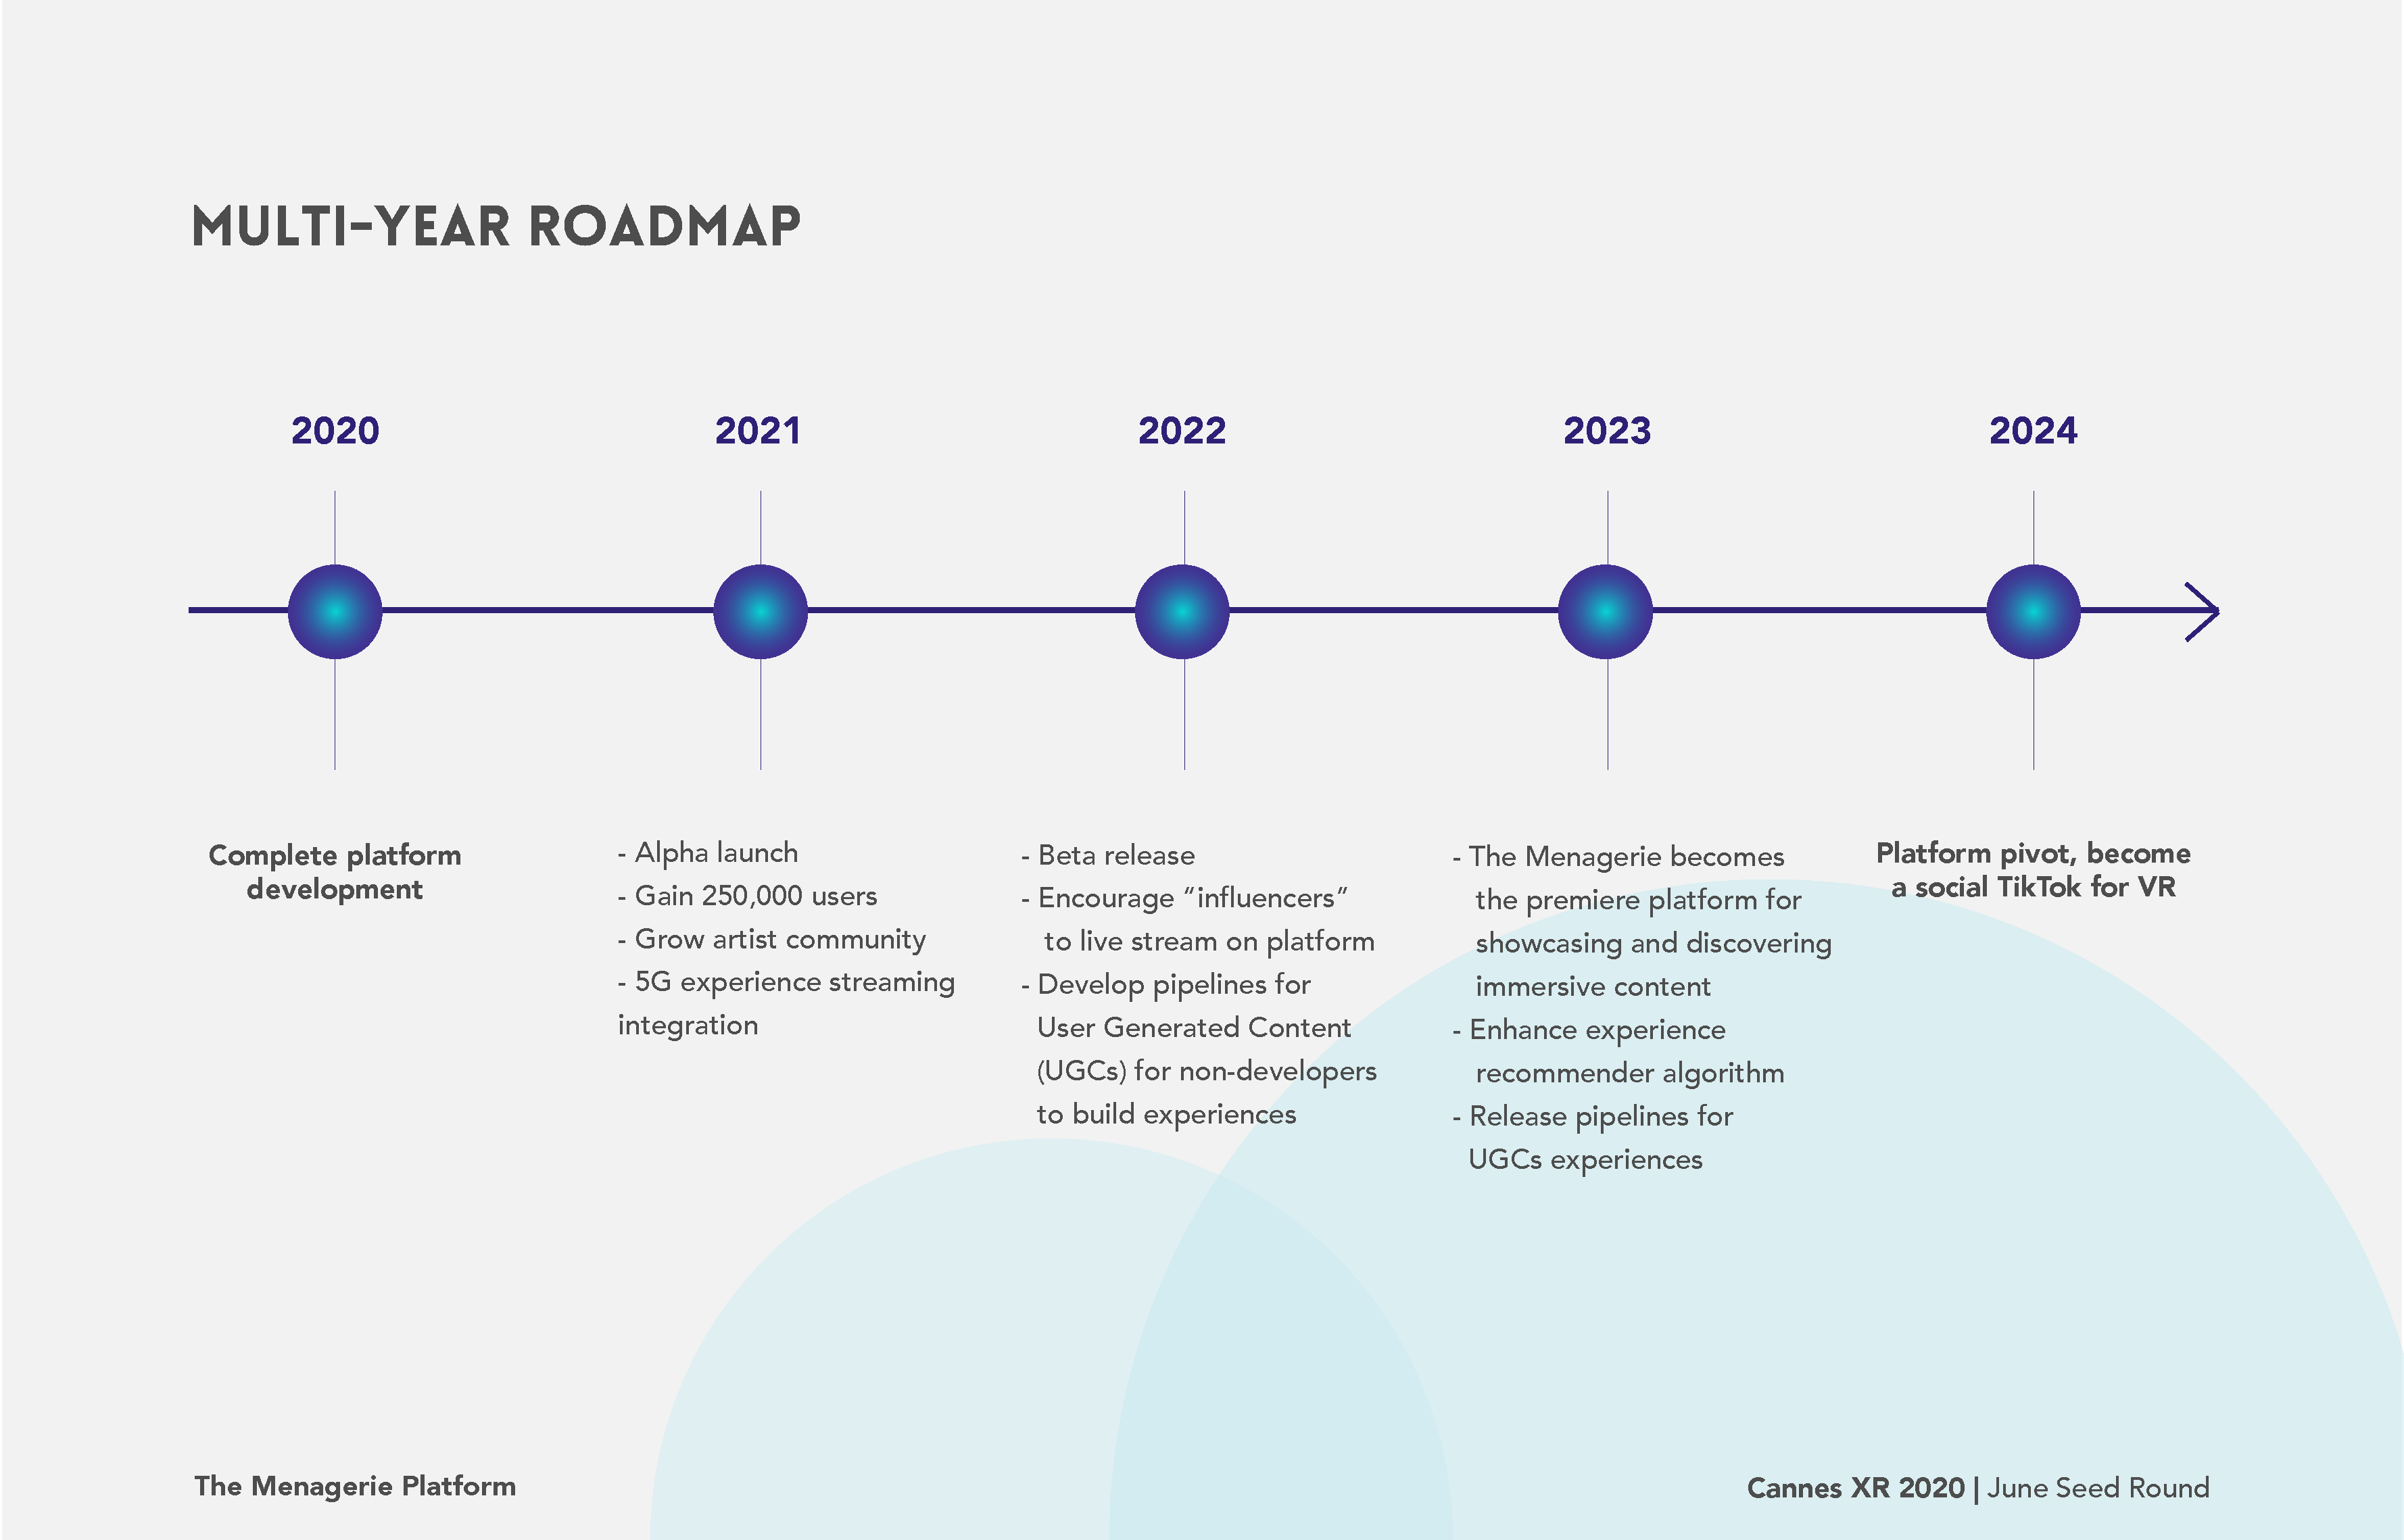 multi-year road map diagram 2020 to 2024